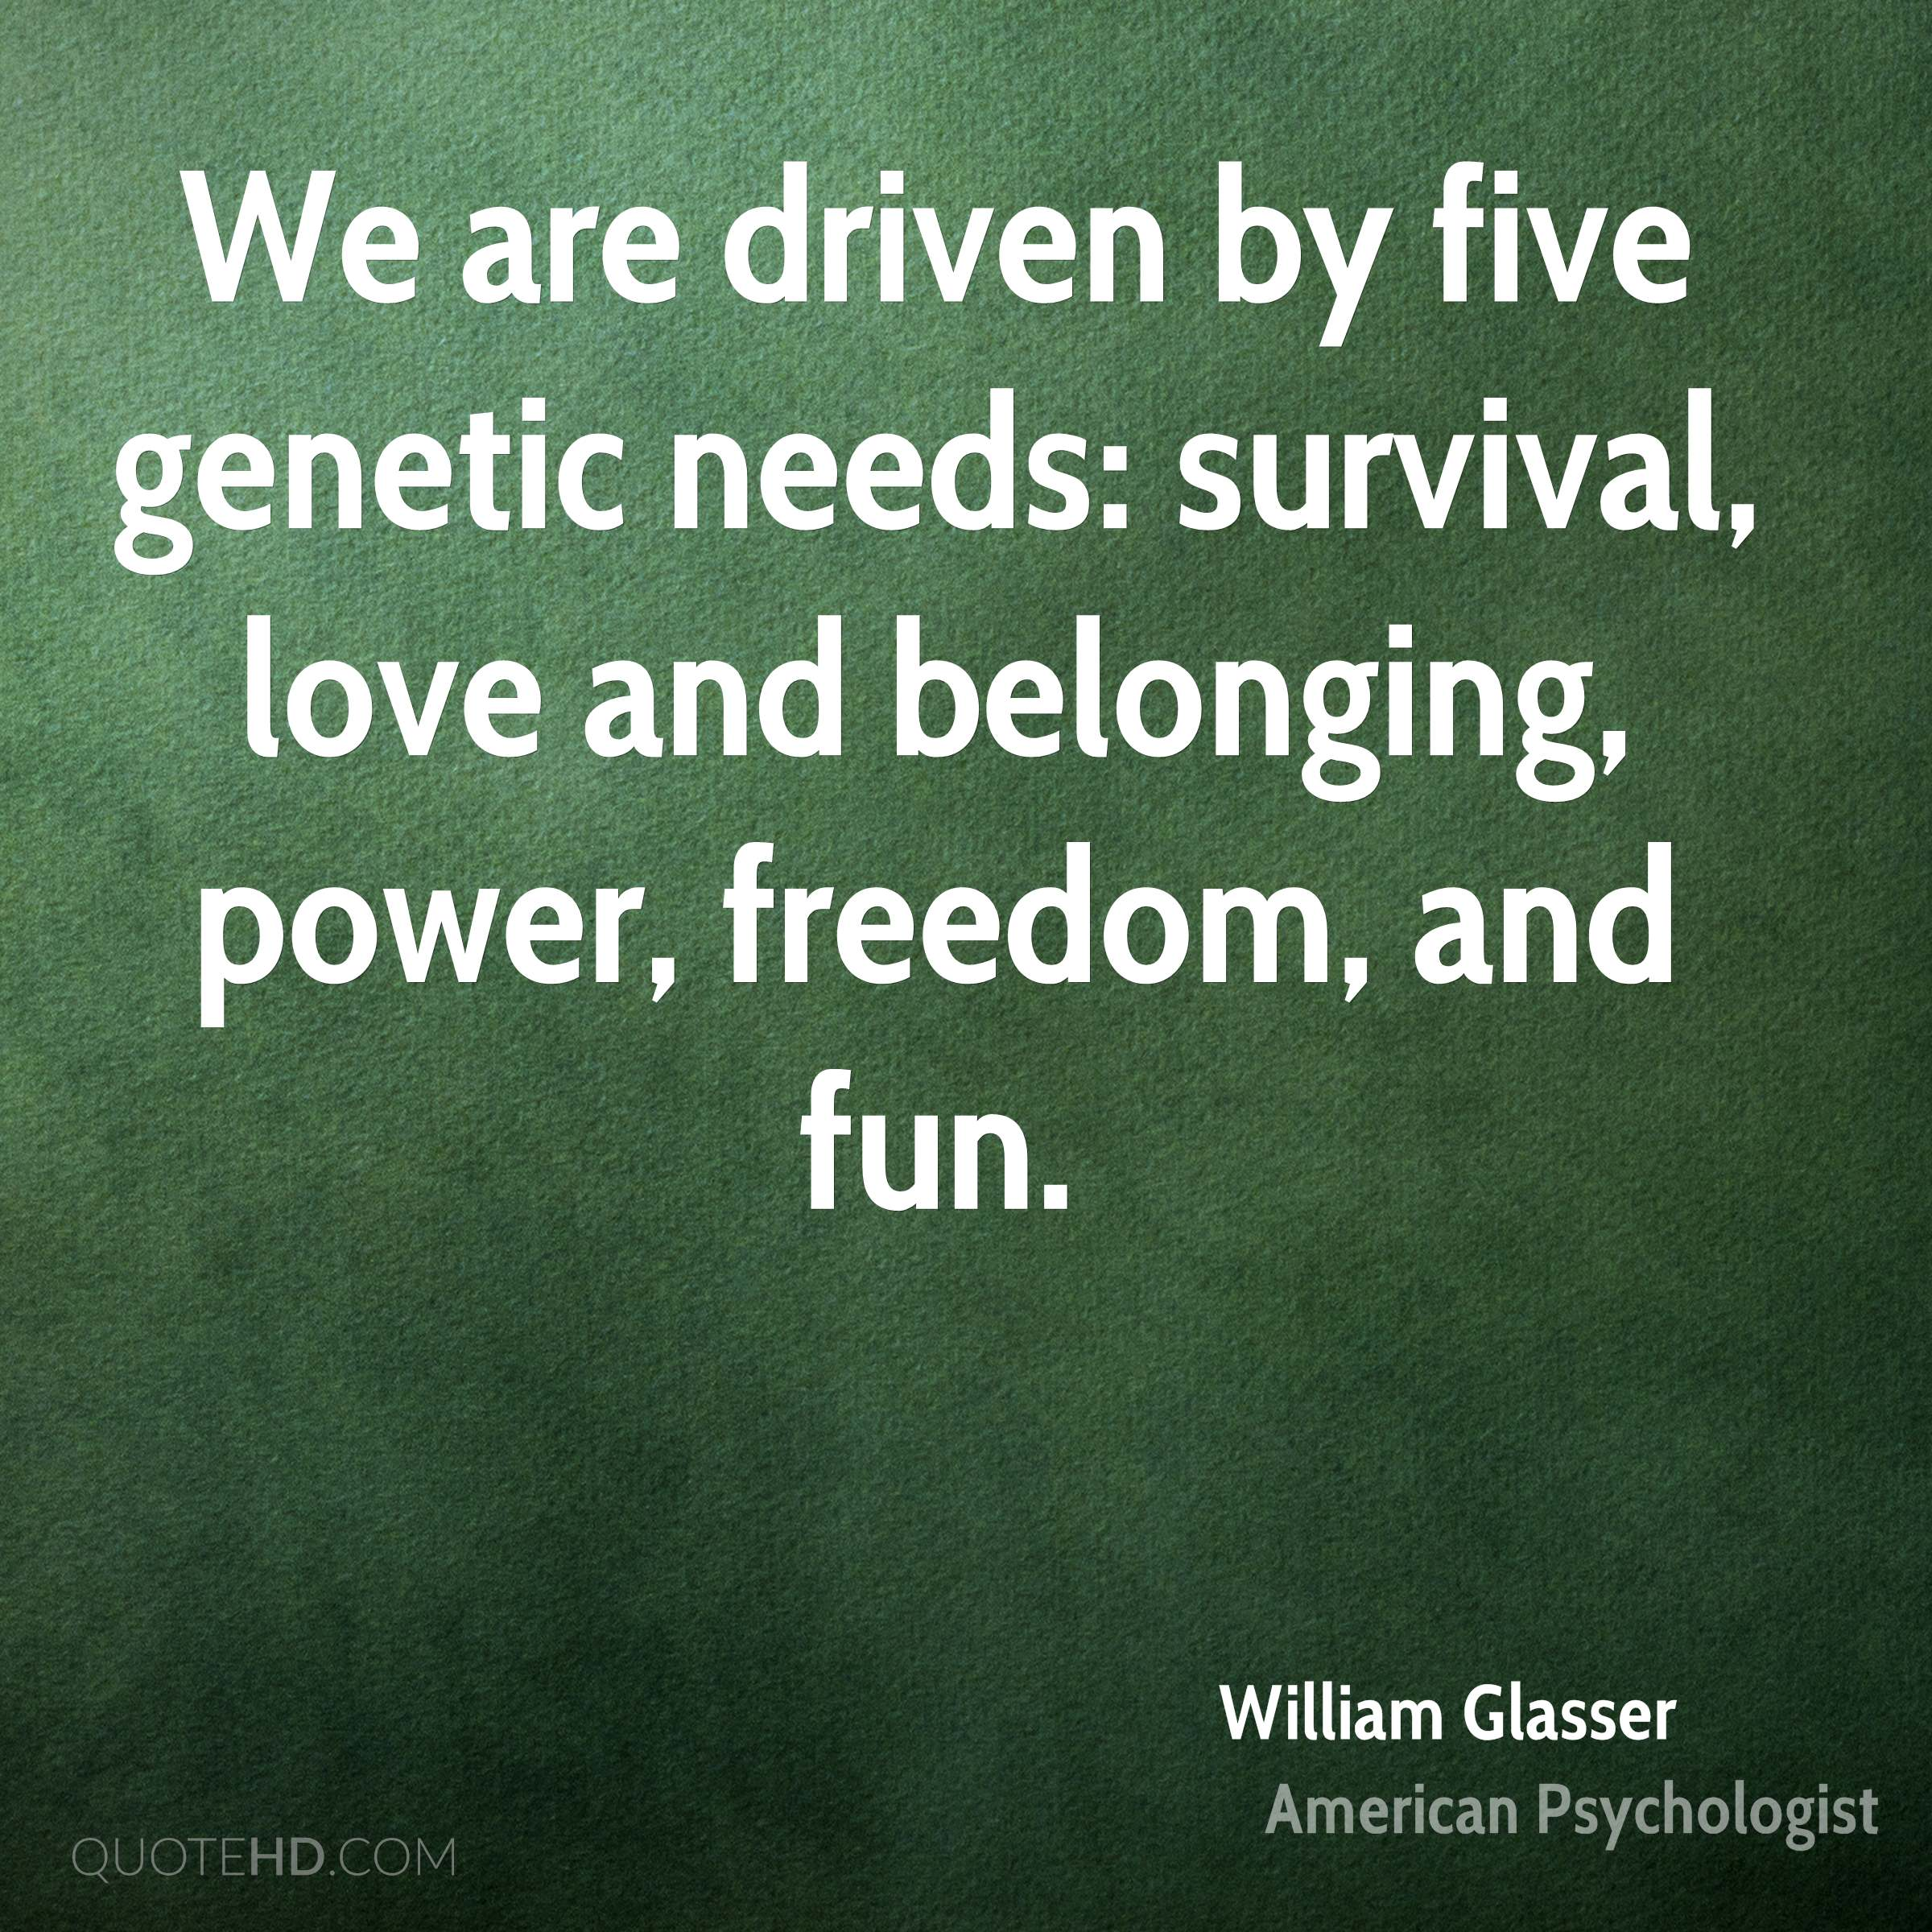 We are driven by five genetic needs: survival, love and belonging, power,